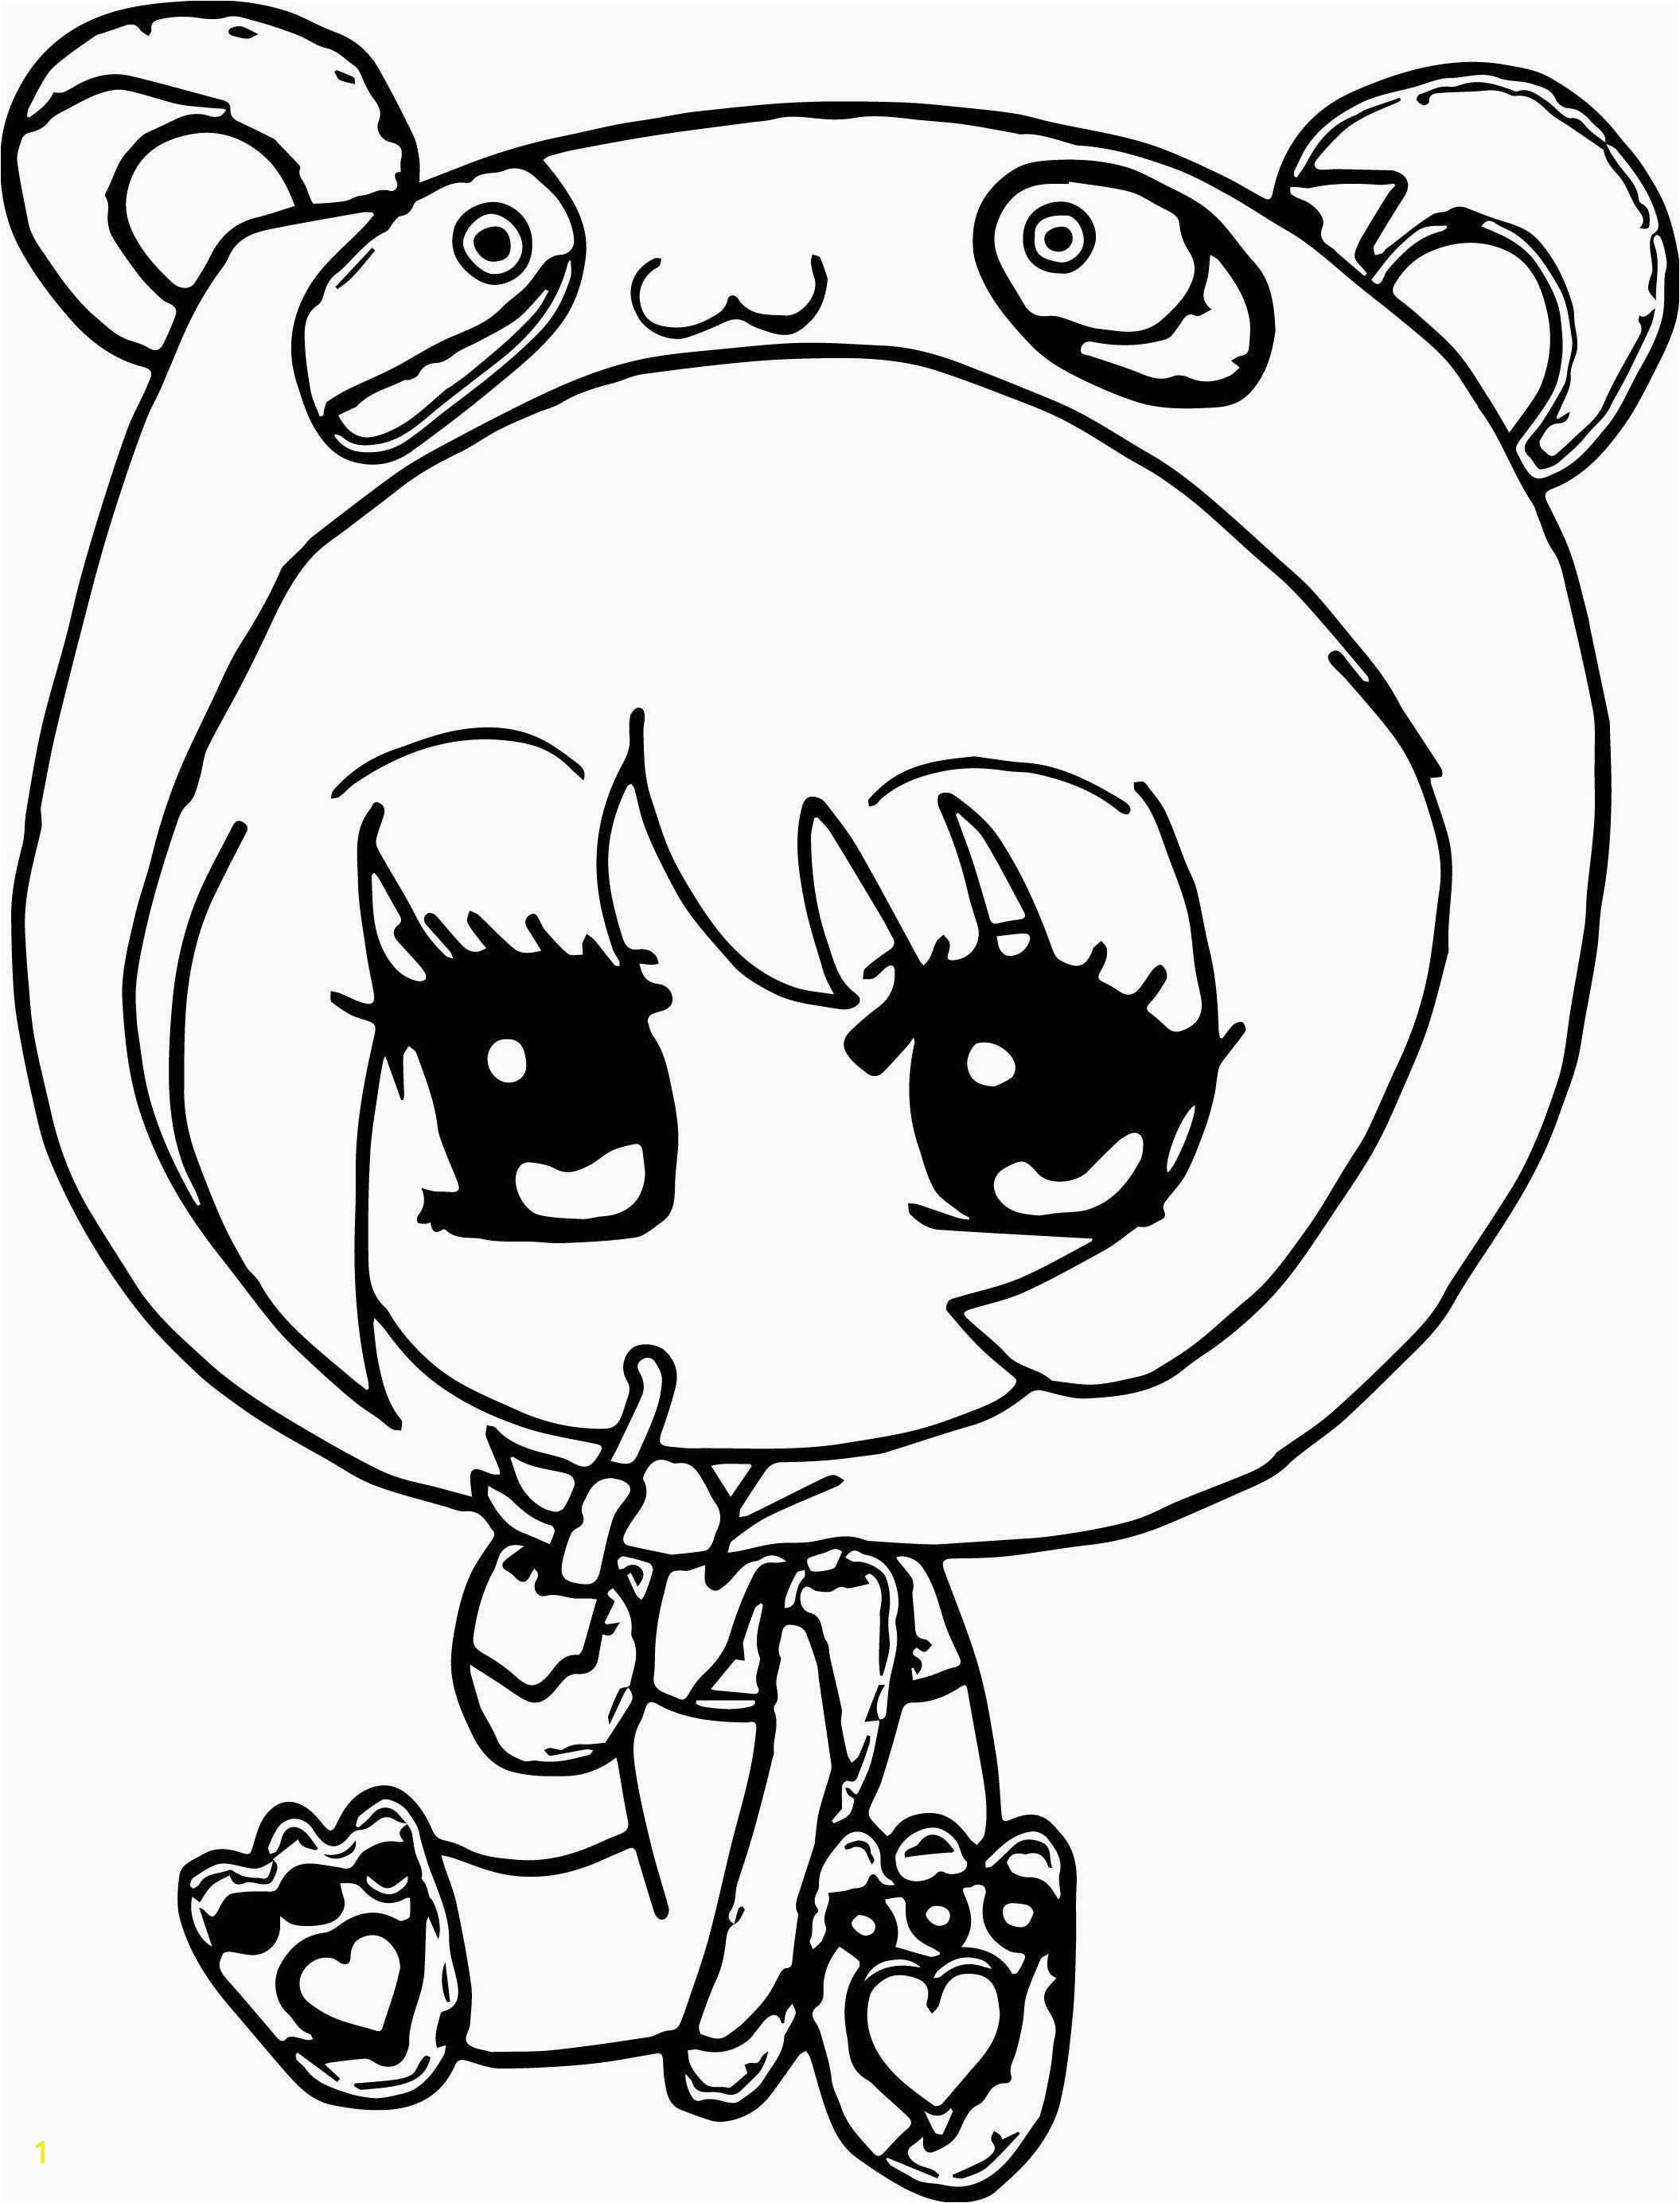 Wocket Coloring Page Lovely Chibi Vocaloid Coloring Pages